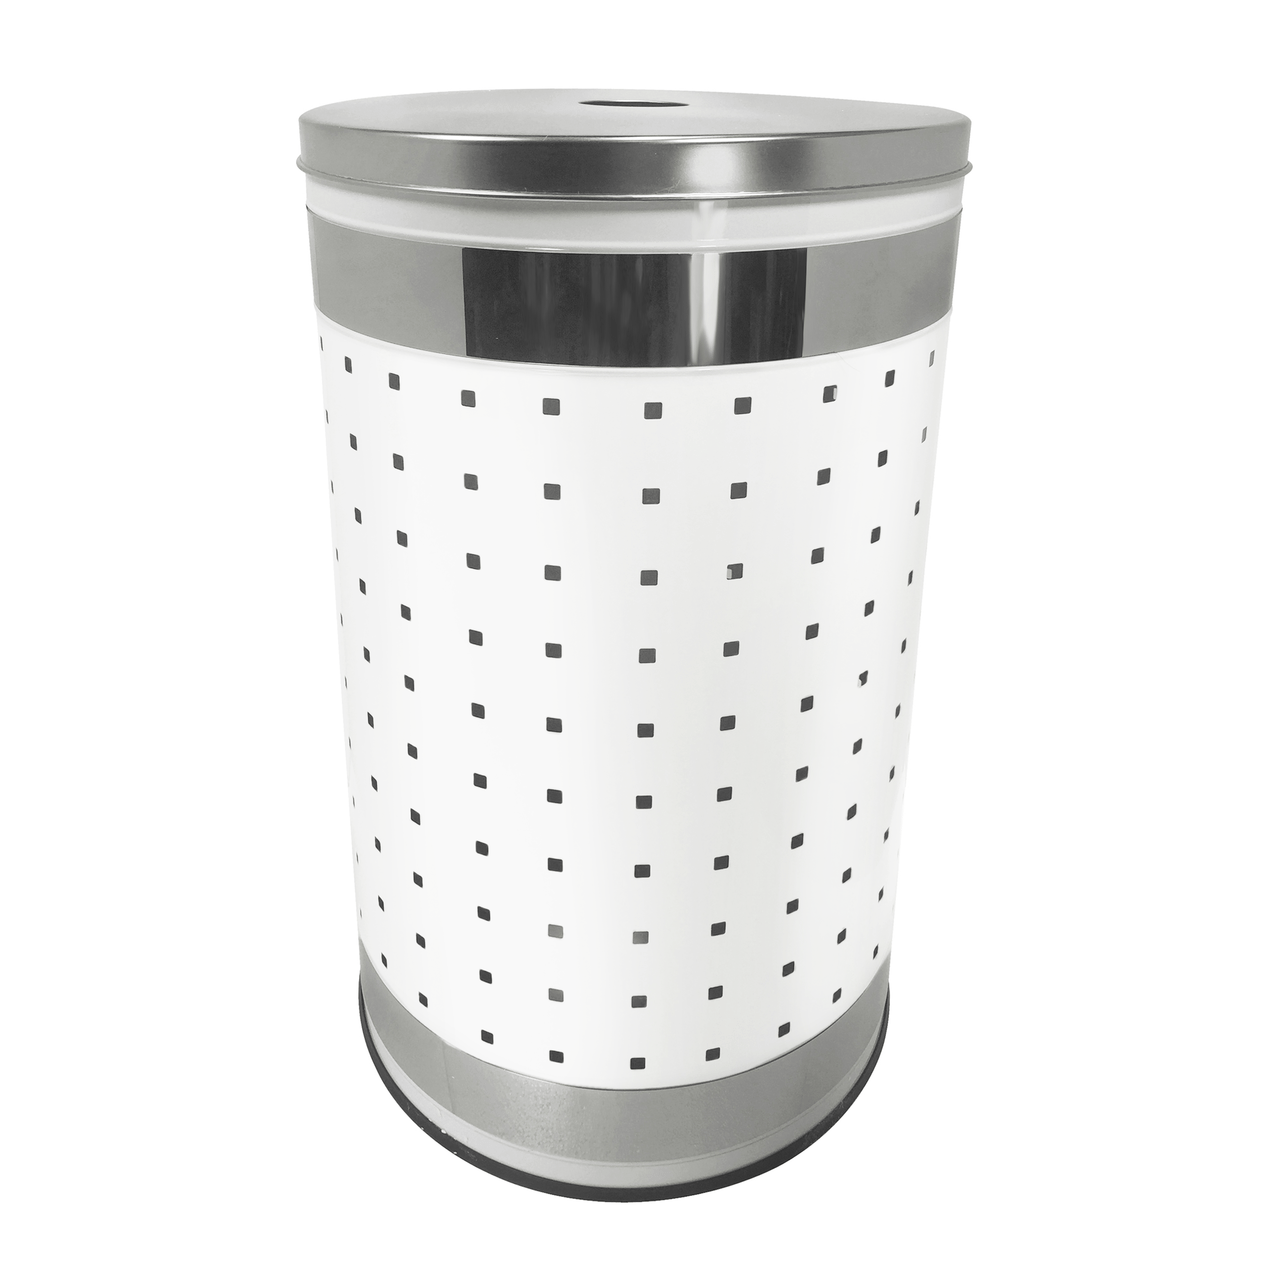 Metal Wash Bin Krugg 50l Ventilated White And Polished Stainless Steel Laundry Bin Hamper Clothes Basket With Stainless Steel Lid